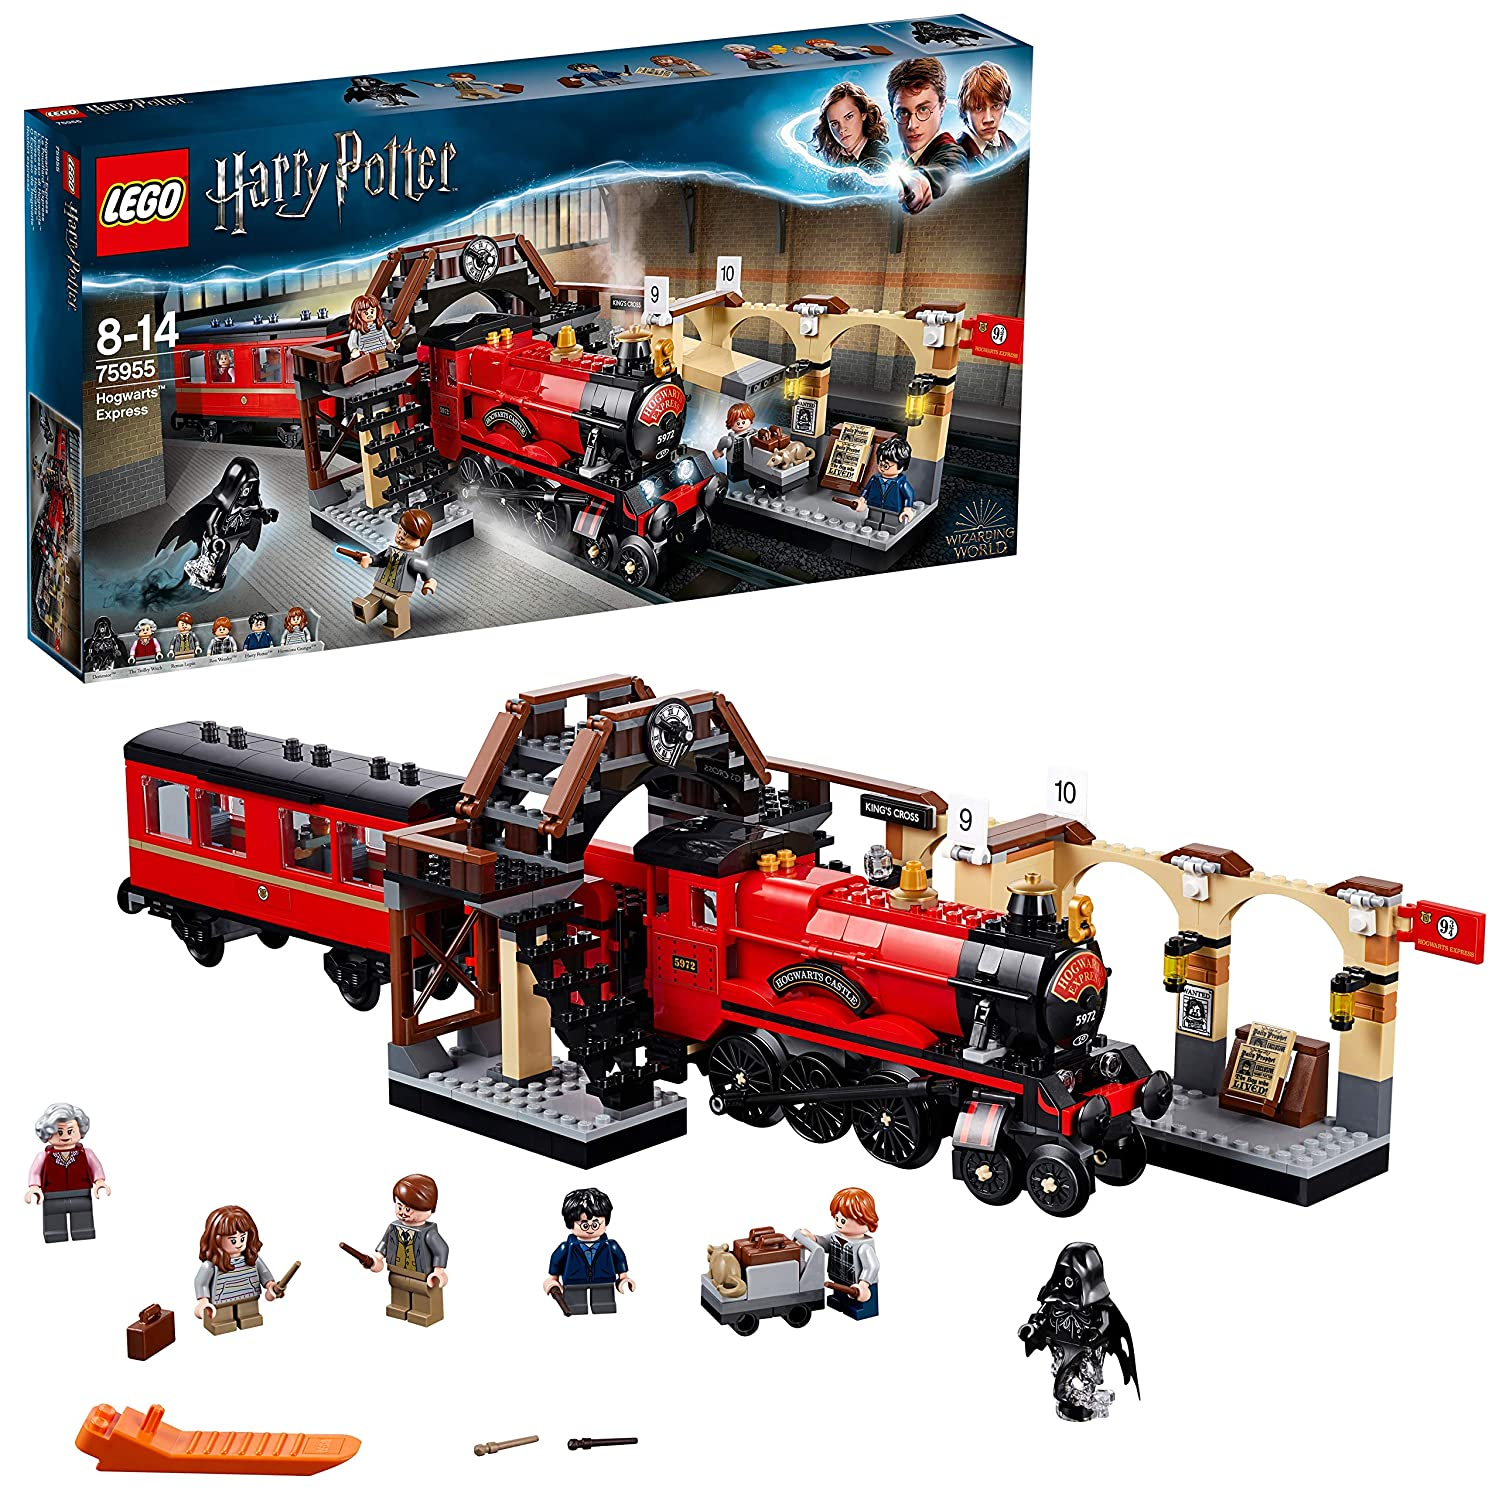 LEGO® Harry Potter™ - Poudlard™ Express - 75955 - Jeu de construction